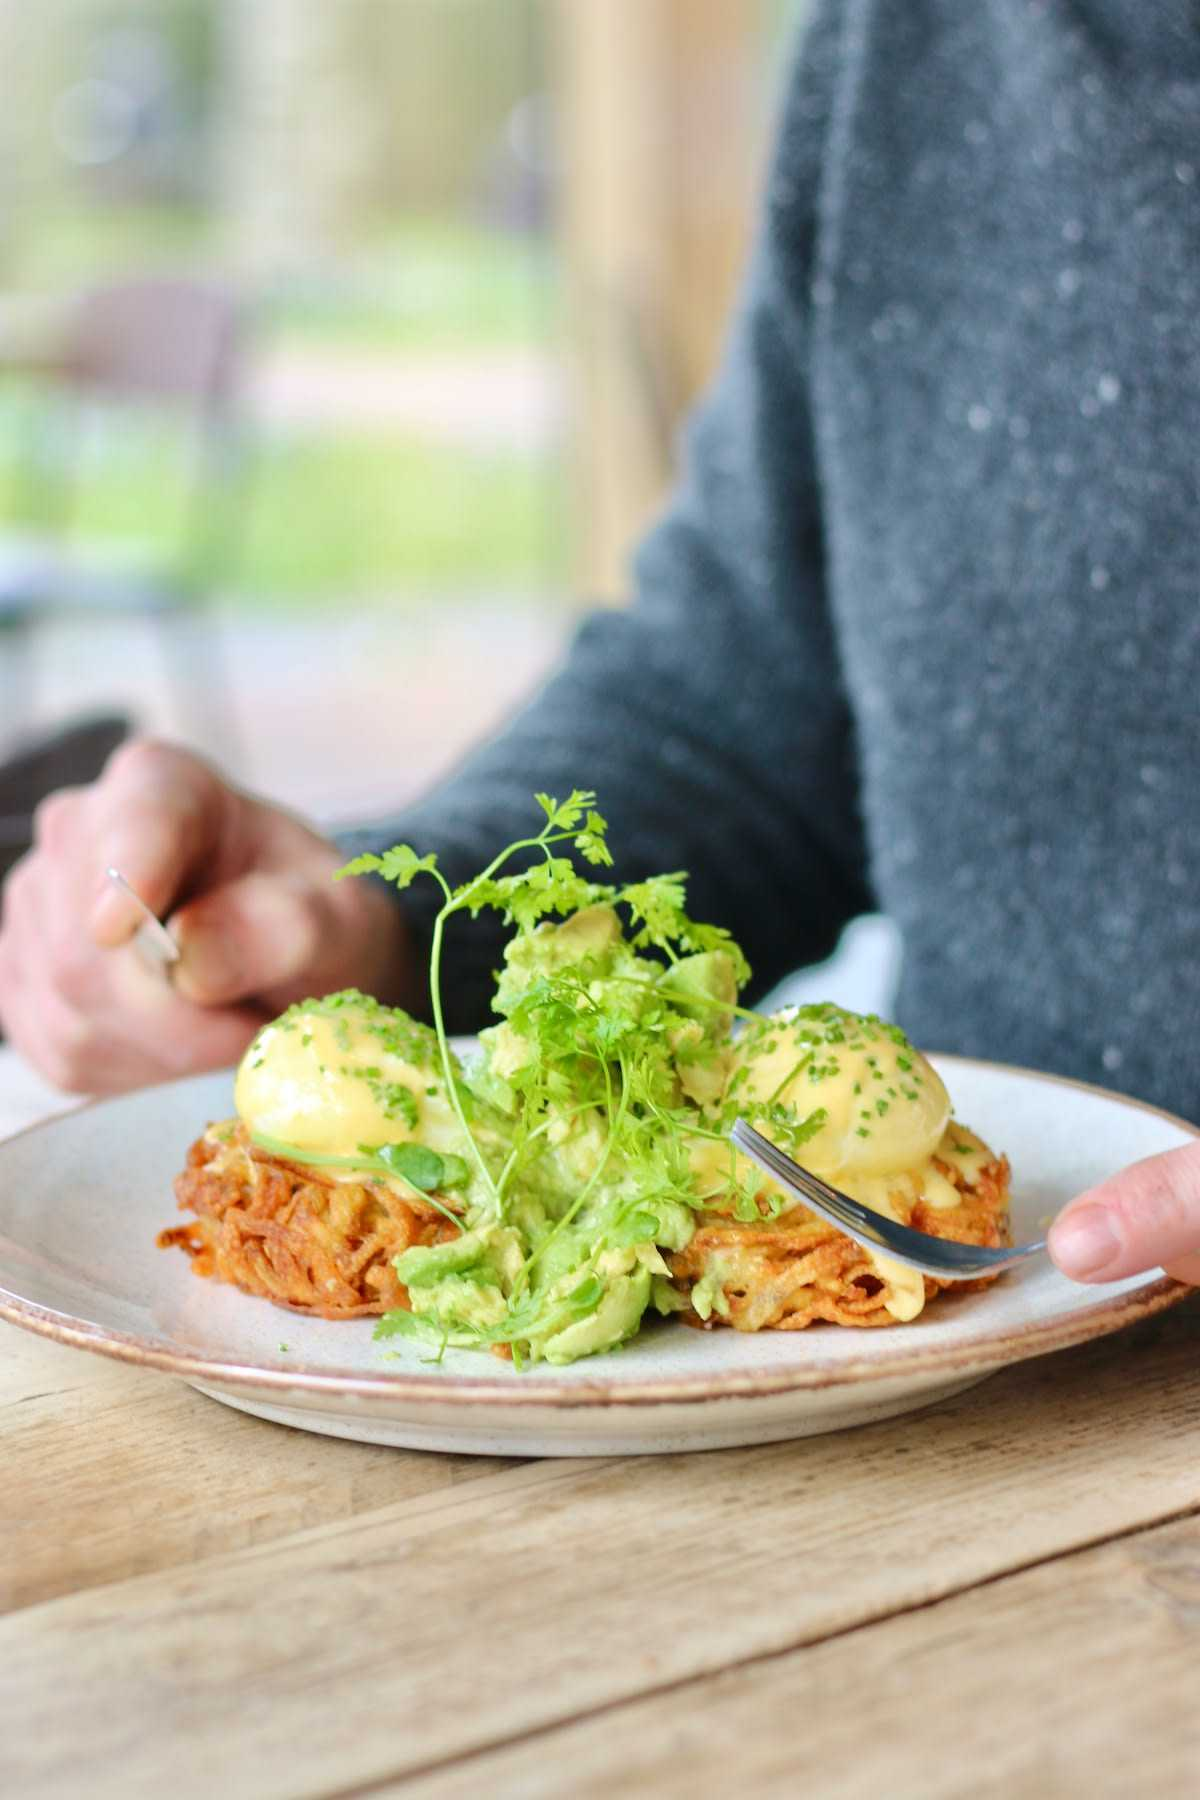 Dignita favorite dish, the Benny Boy, contains hash browns, poached eggs, and avocado at Amsterdam best restaurant